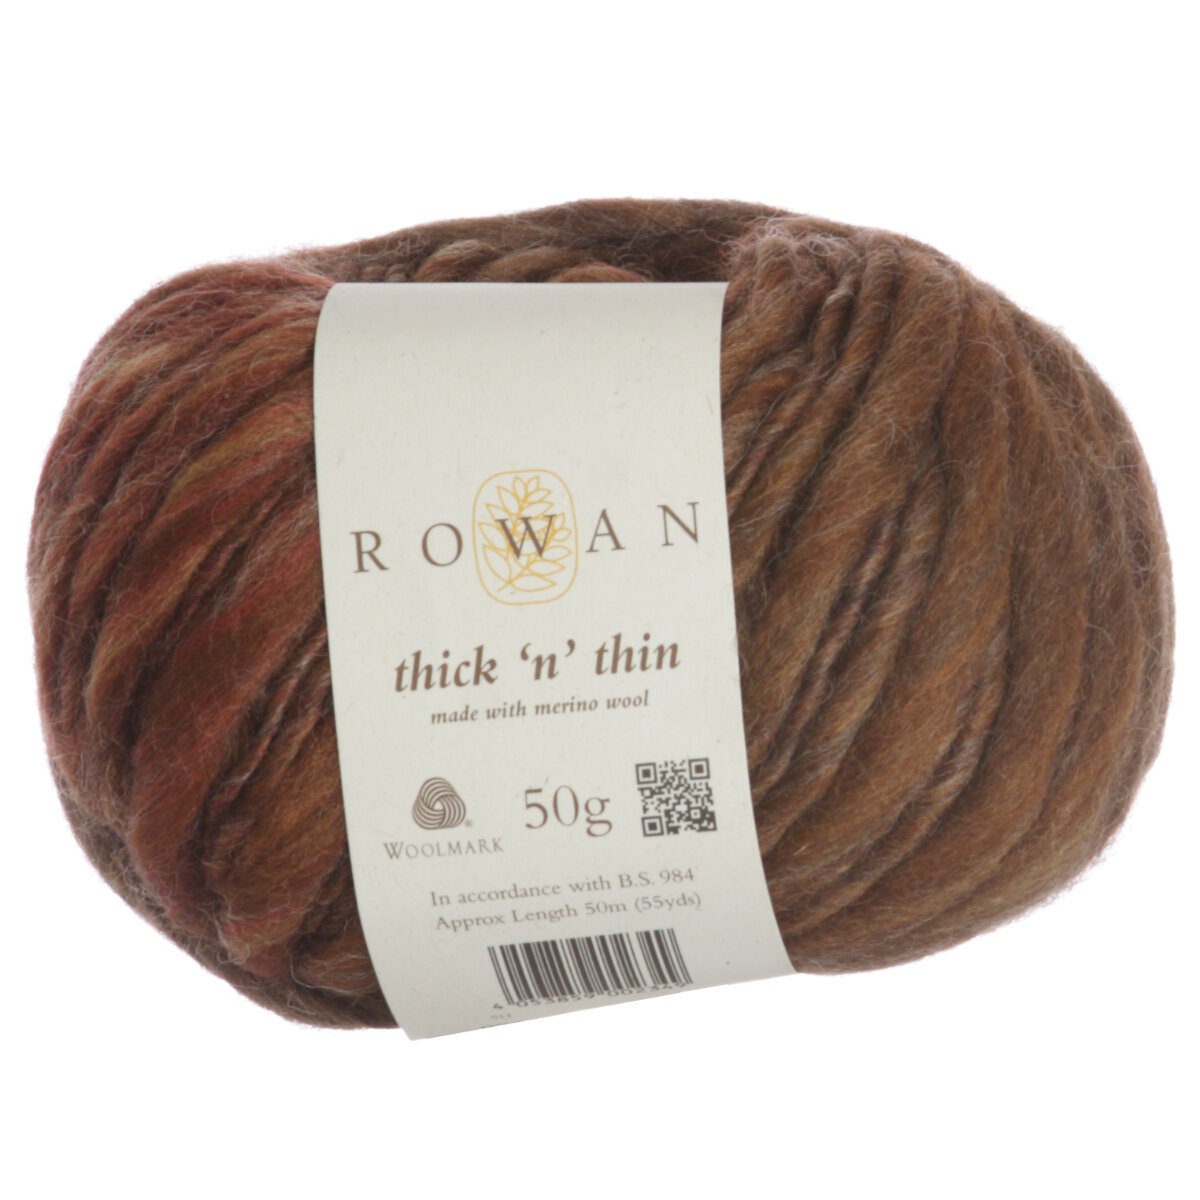 Knitting Patterns For Thin Yarn : Rowan Thick n Thin Yarn - 972 Moorlande at Jimmy Beans Wool